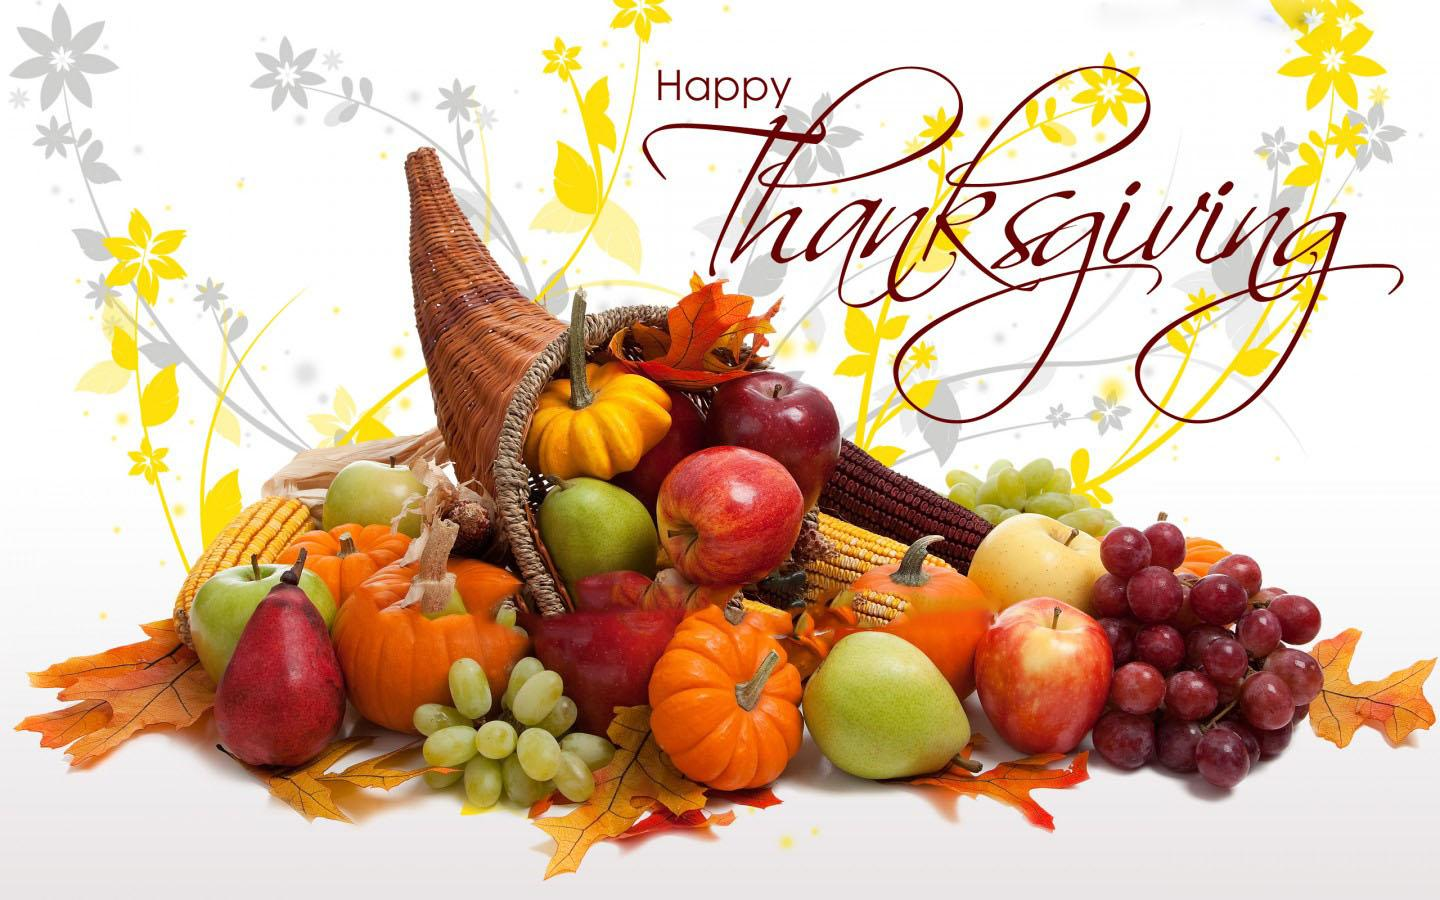 Happy Thanksgiving Wallpaper 2019 – Free Thanksgiving Wallpapers And Backgrounds